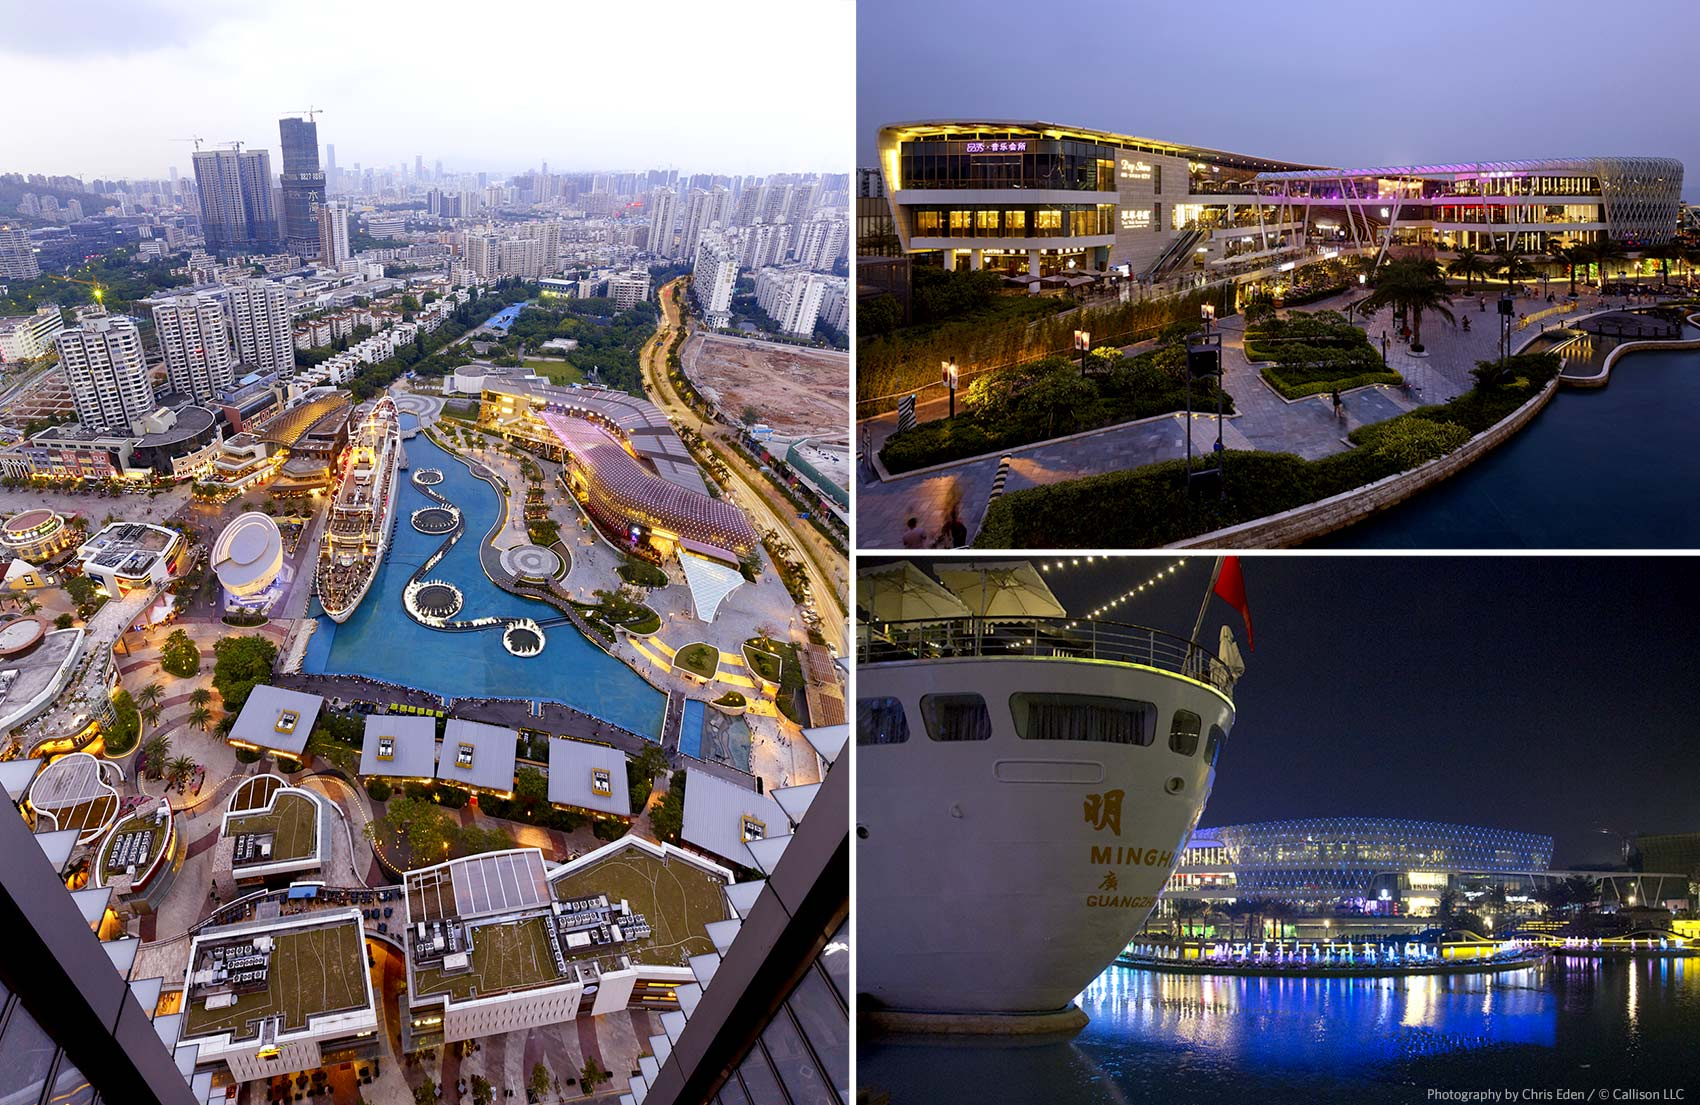 Sea World - Shen Zen, China - Over all site and exterior details